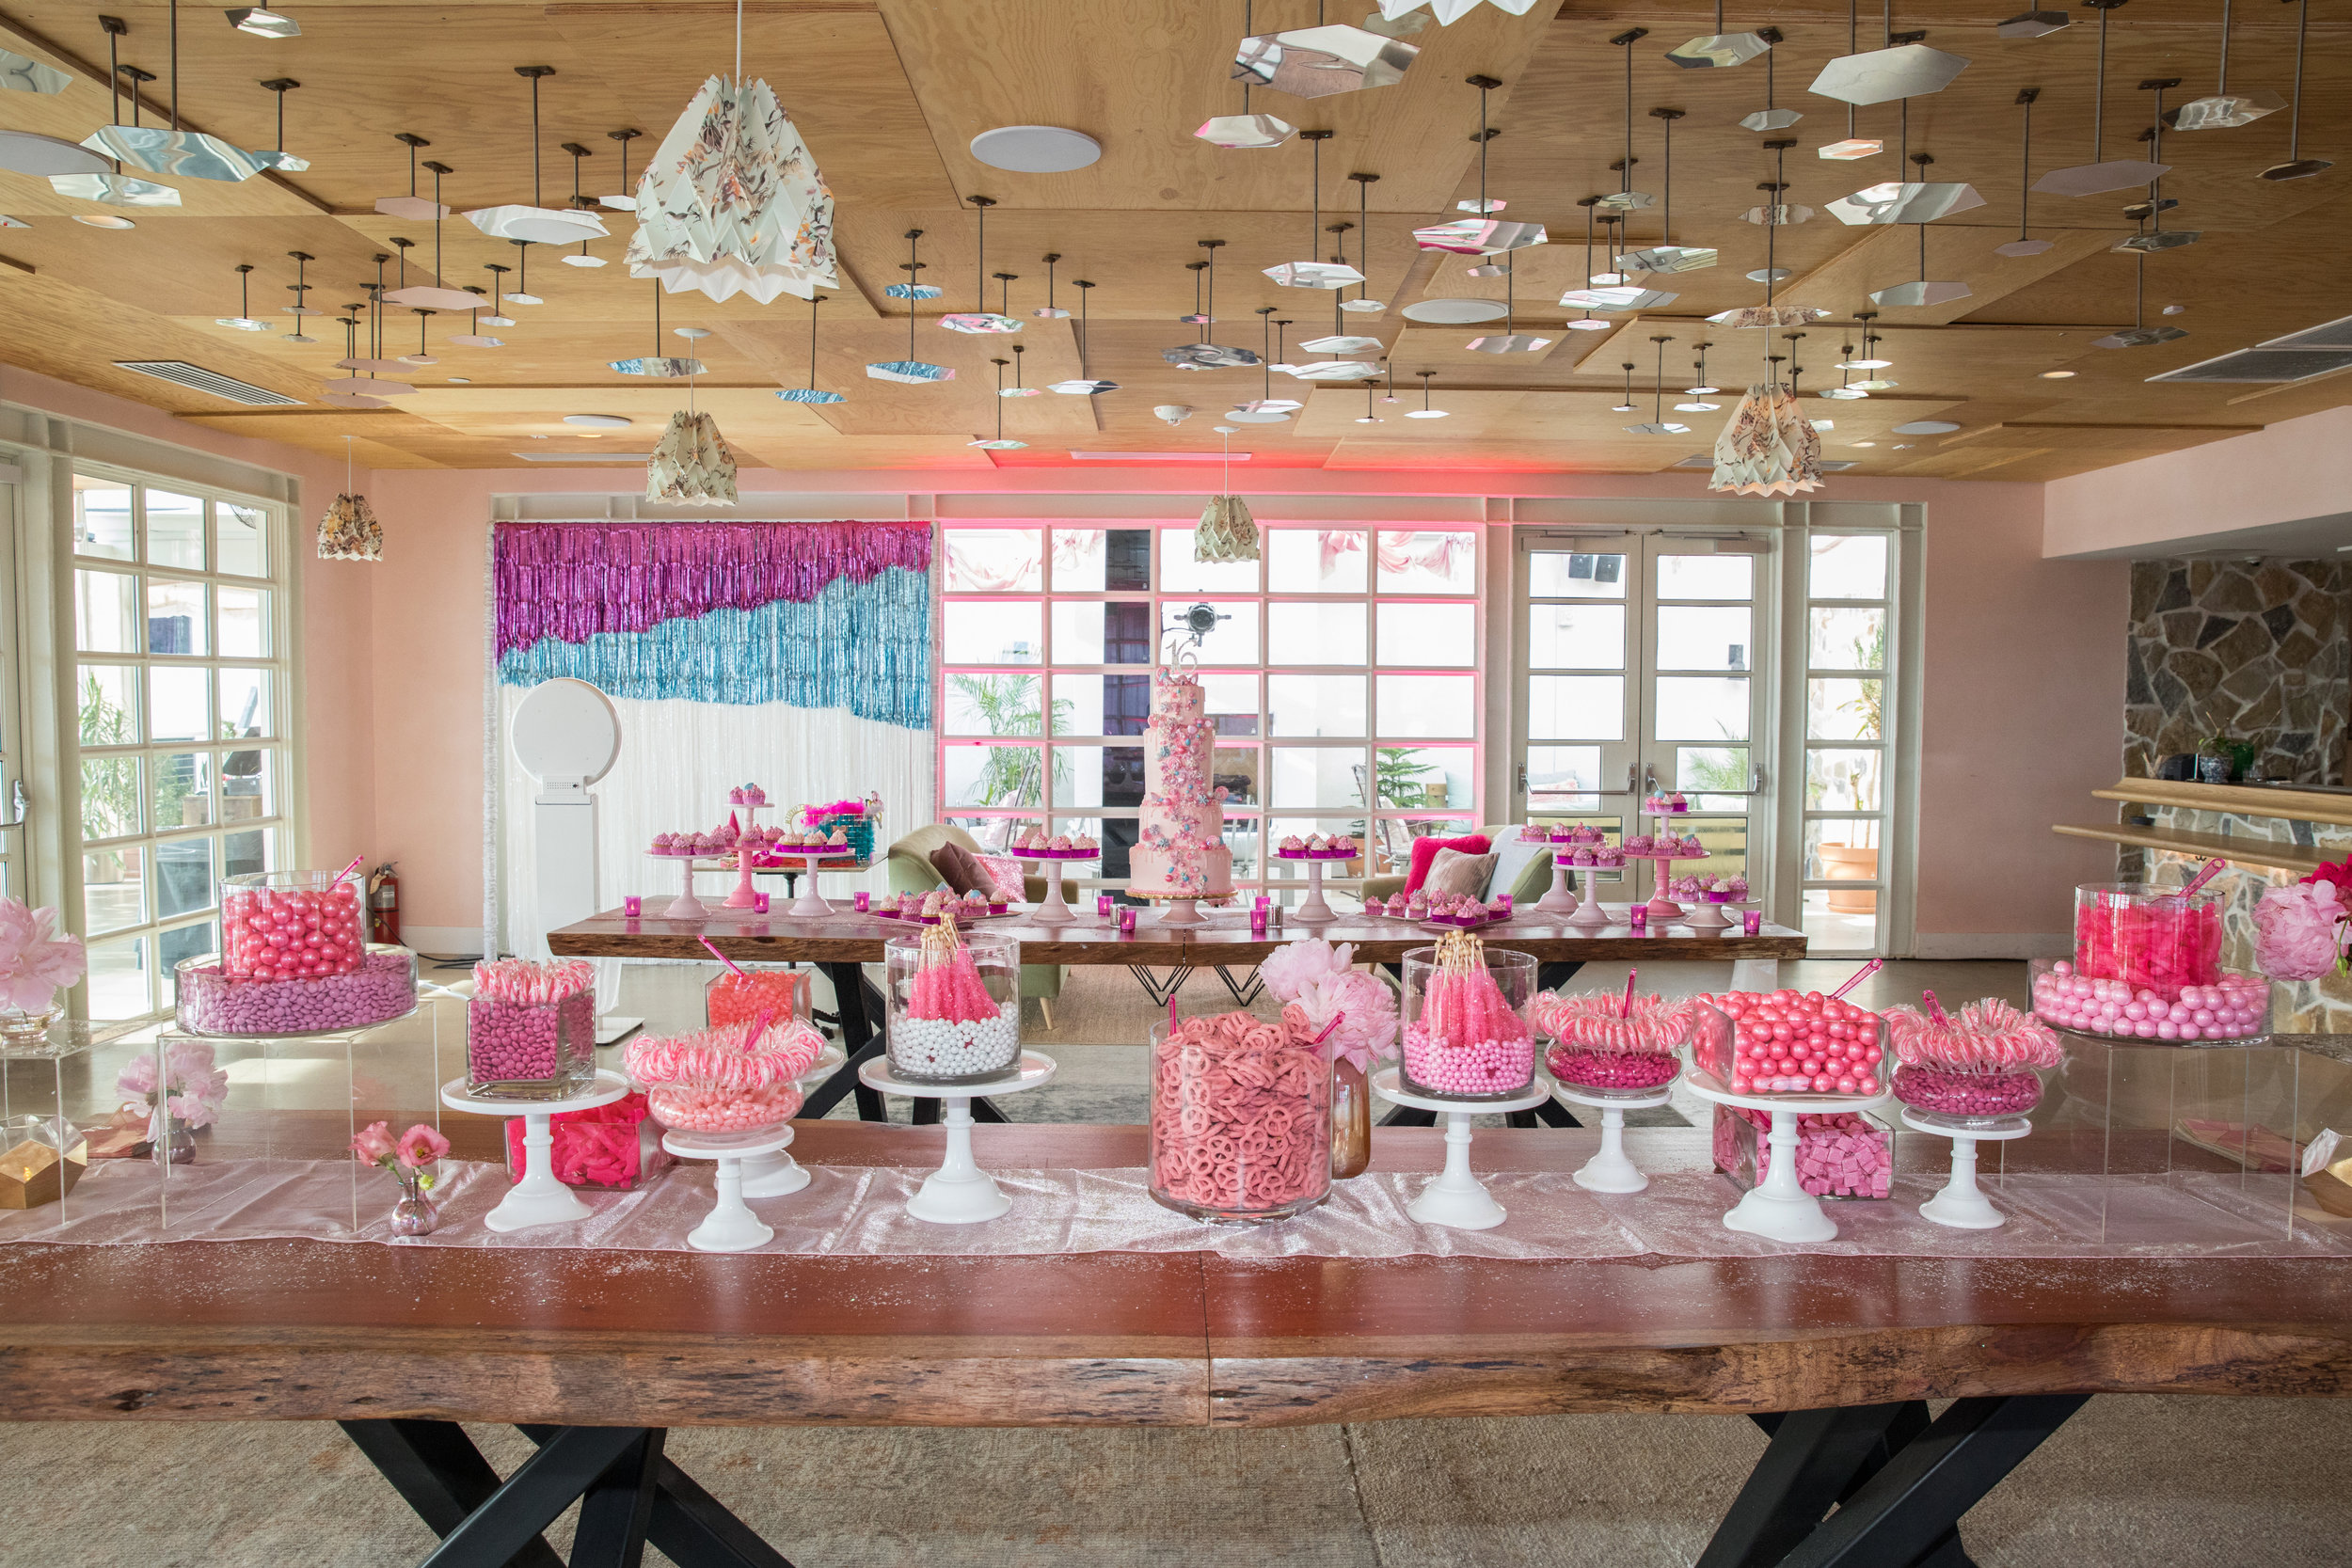 Teen Vogue went back to the basics with its theme for a grand birthday bash: all pink everything.